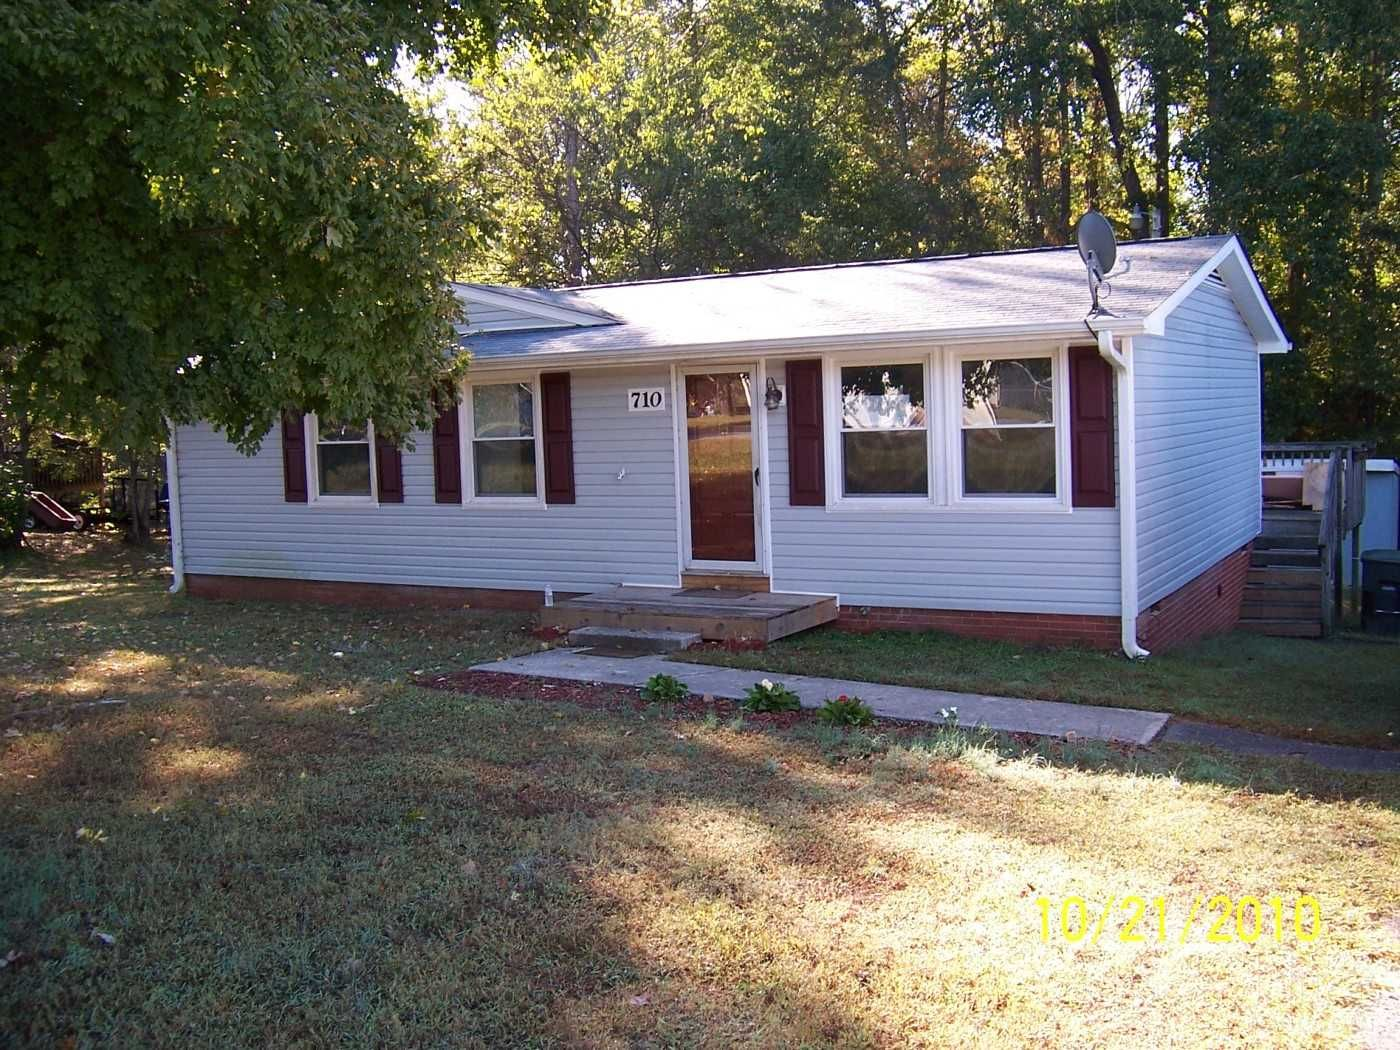 A Houses For Rent Nice Quiet Neighborhood Rama Wood Dr Concord Nc Houses For